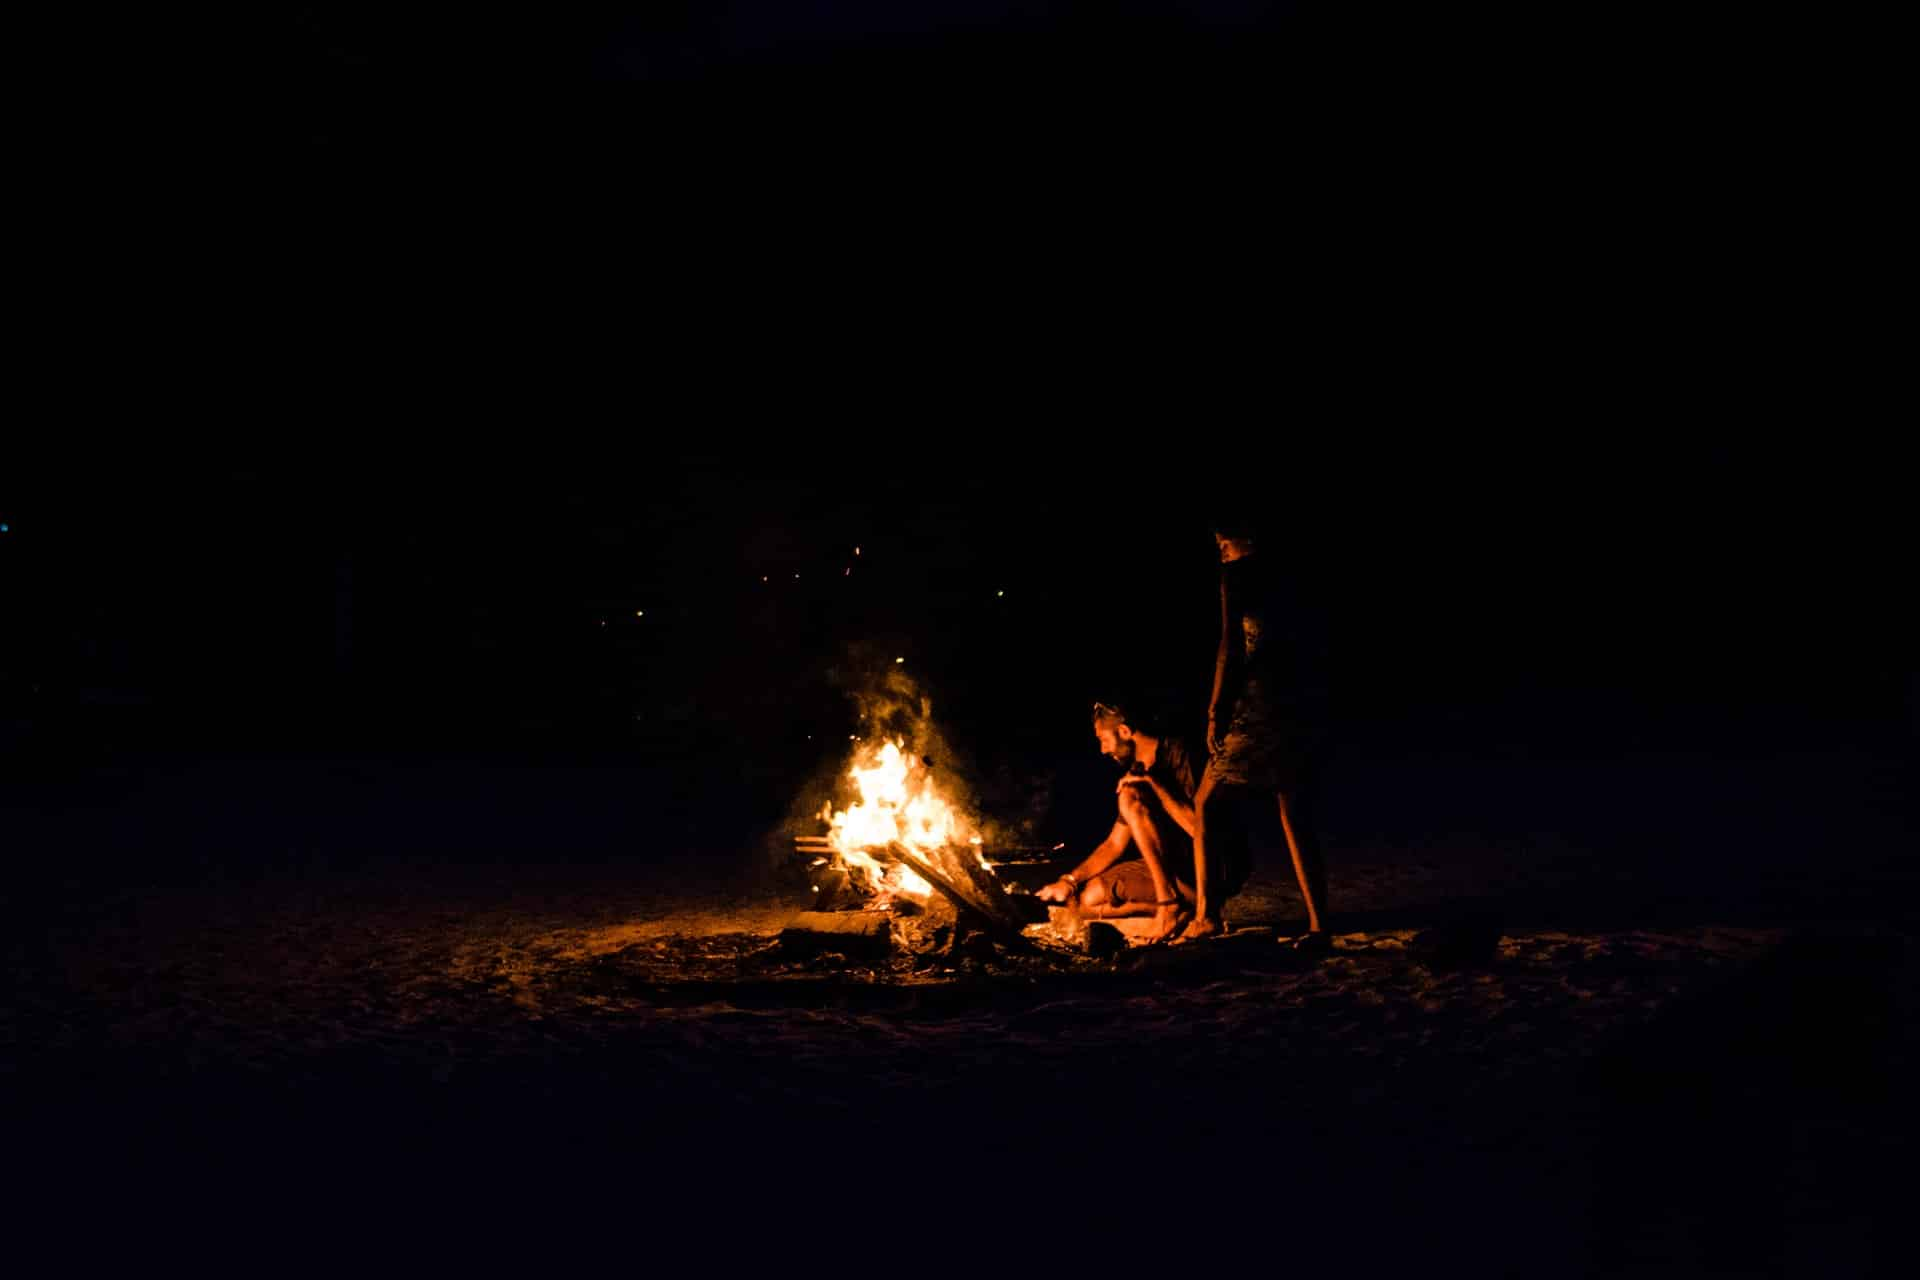 Two people by a campfire at night